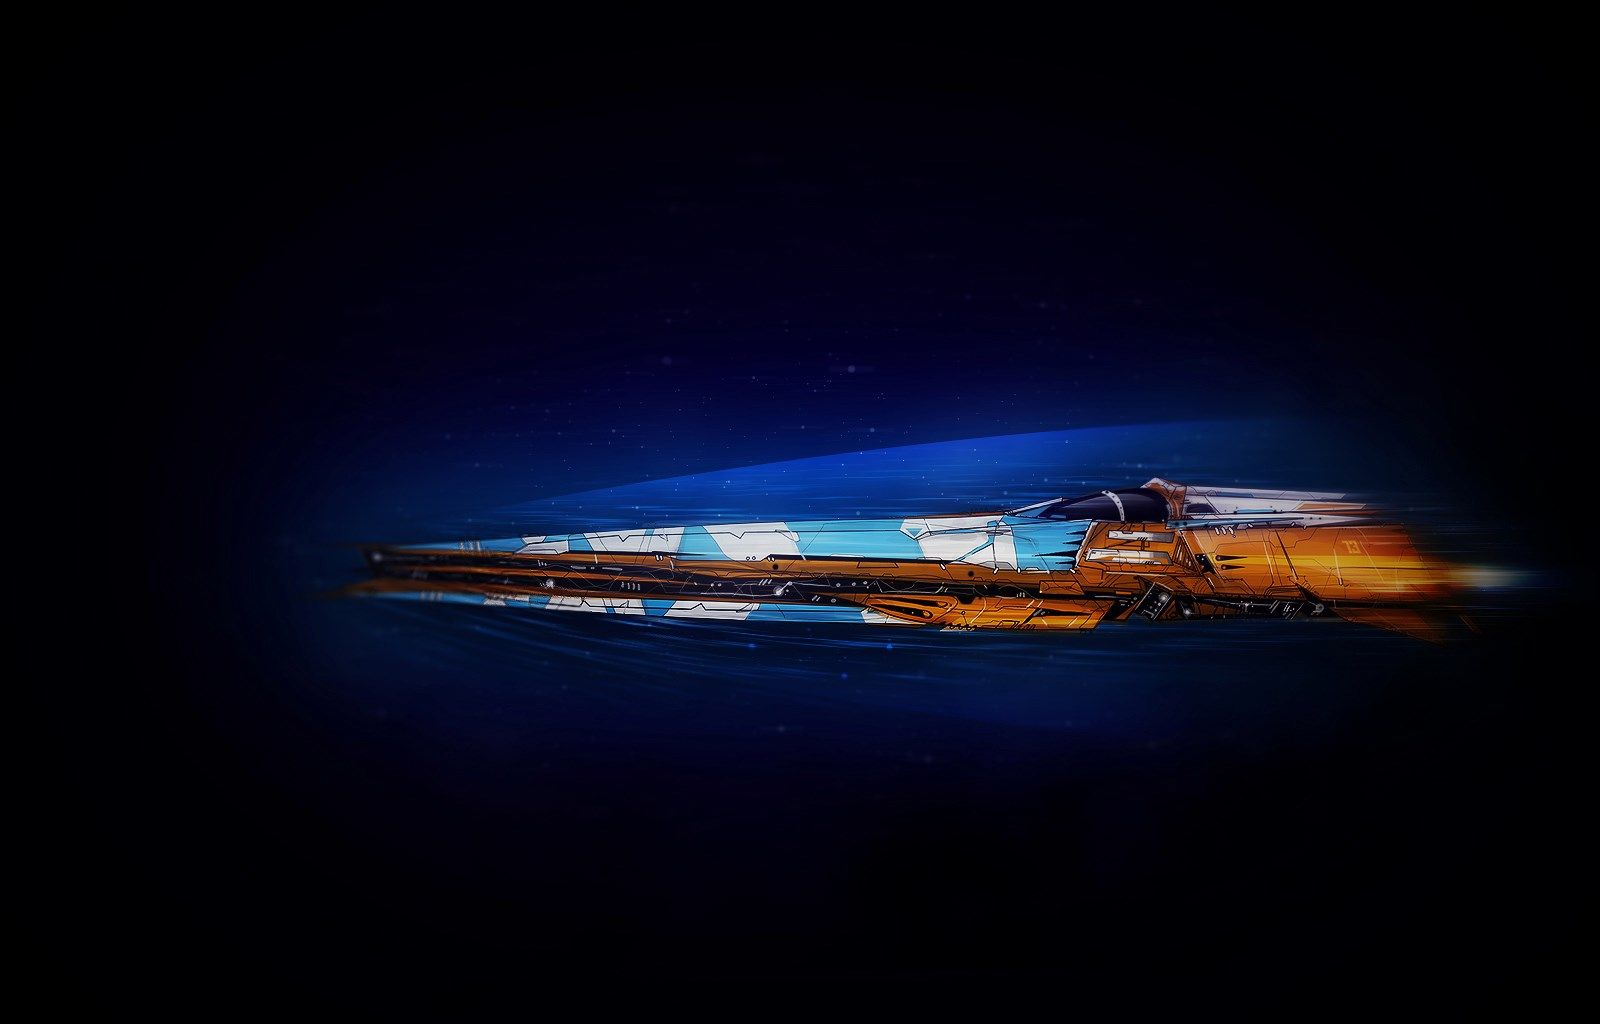 spaceship picture full hd backgrounds 1600x1024 100 kb